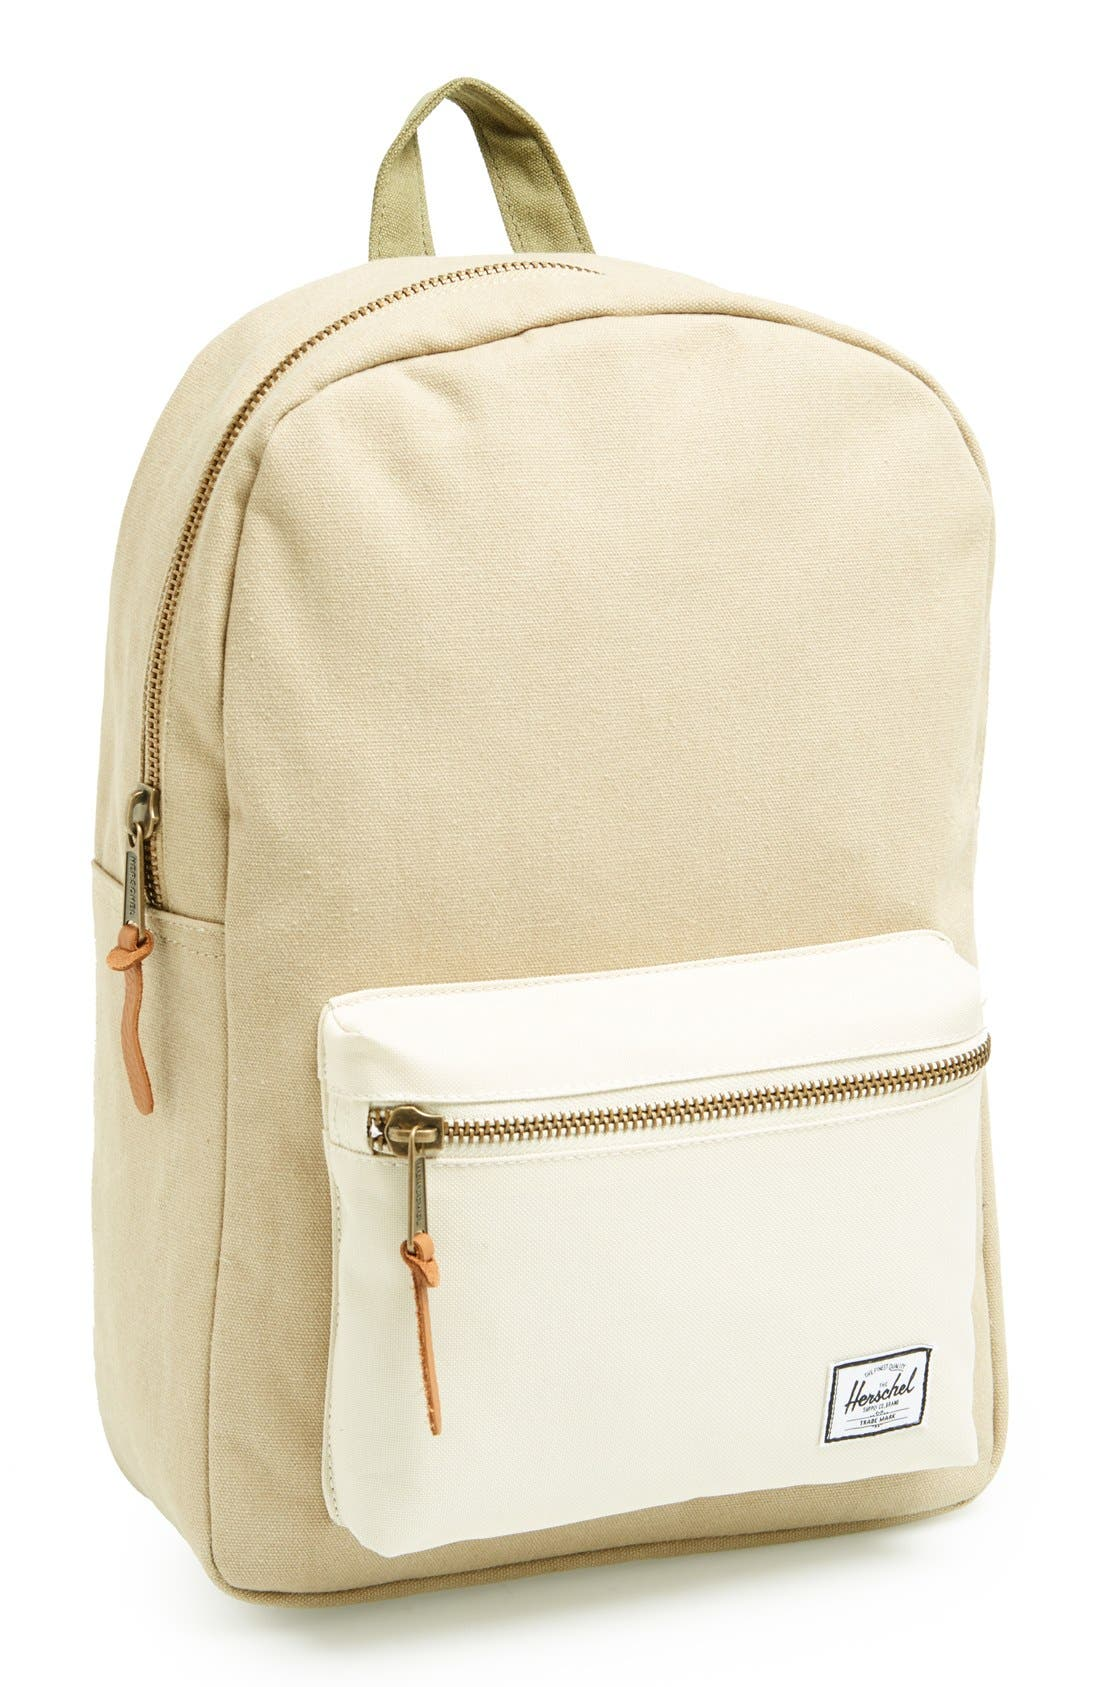 Main Image - Herschel Supply Co. 'Settlement Mid-Volume' Canvas Laptop Backpack (13 Inch)